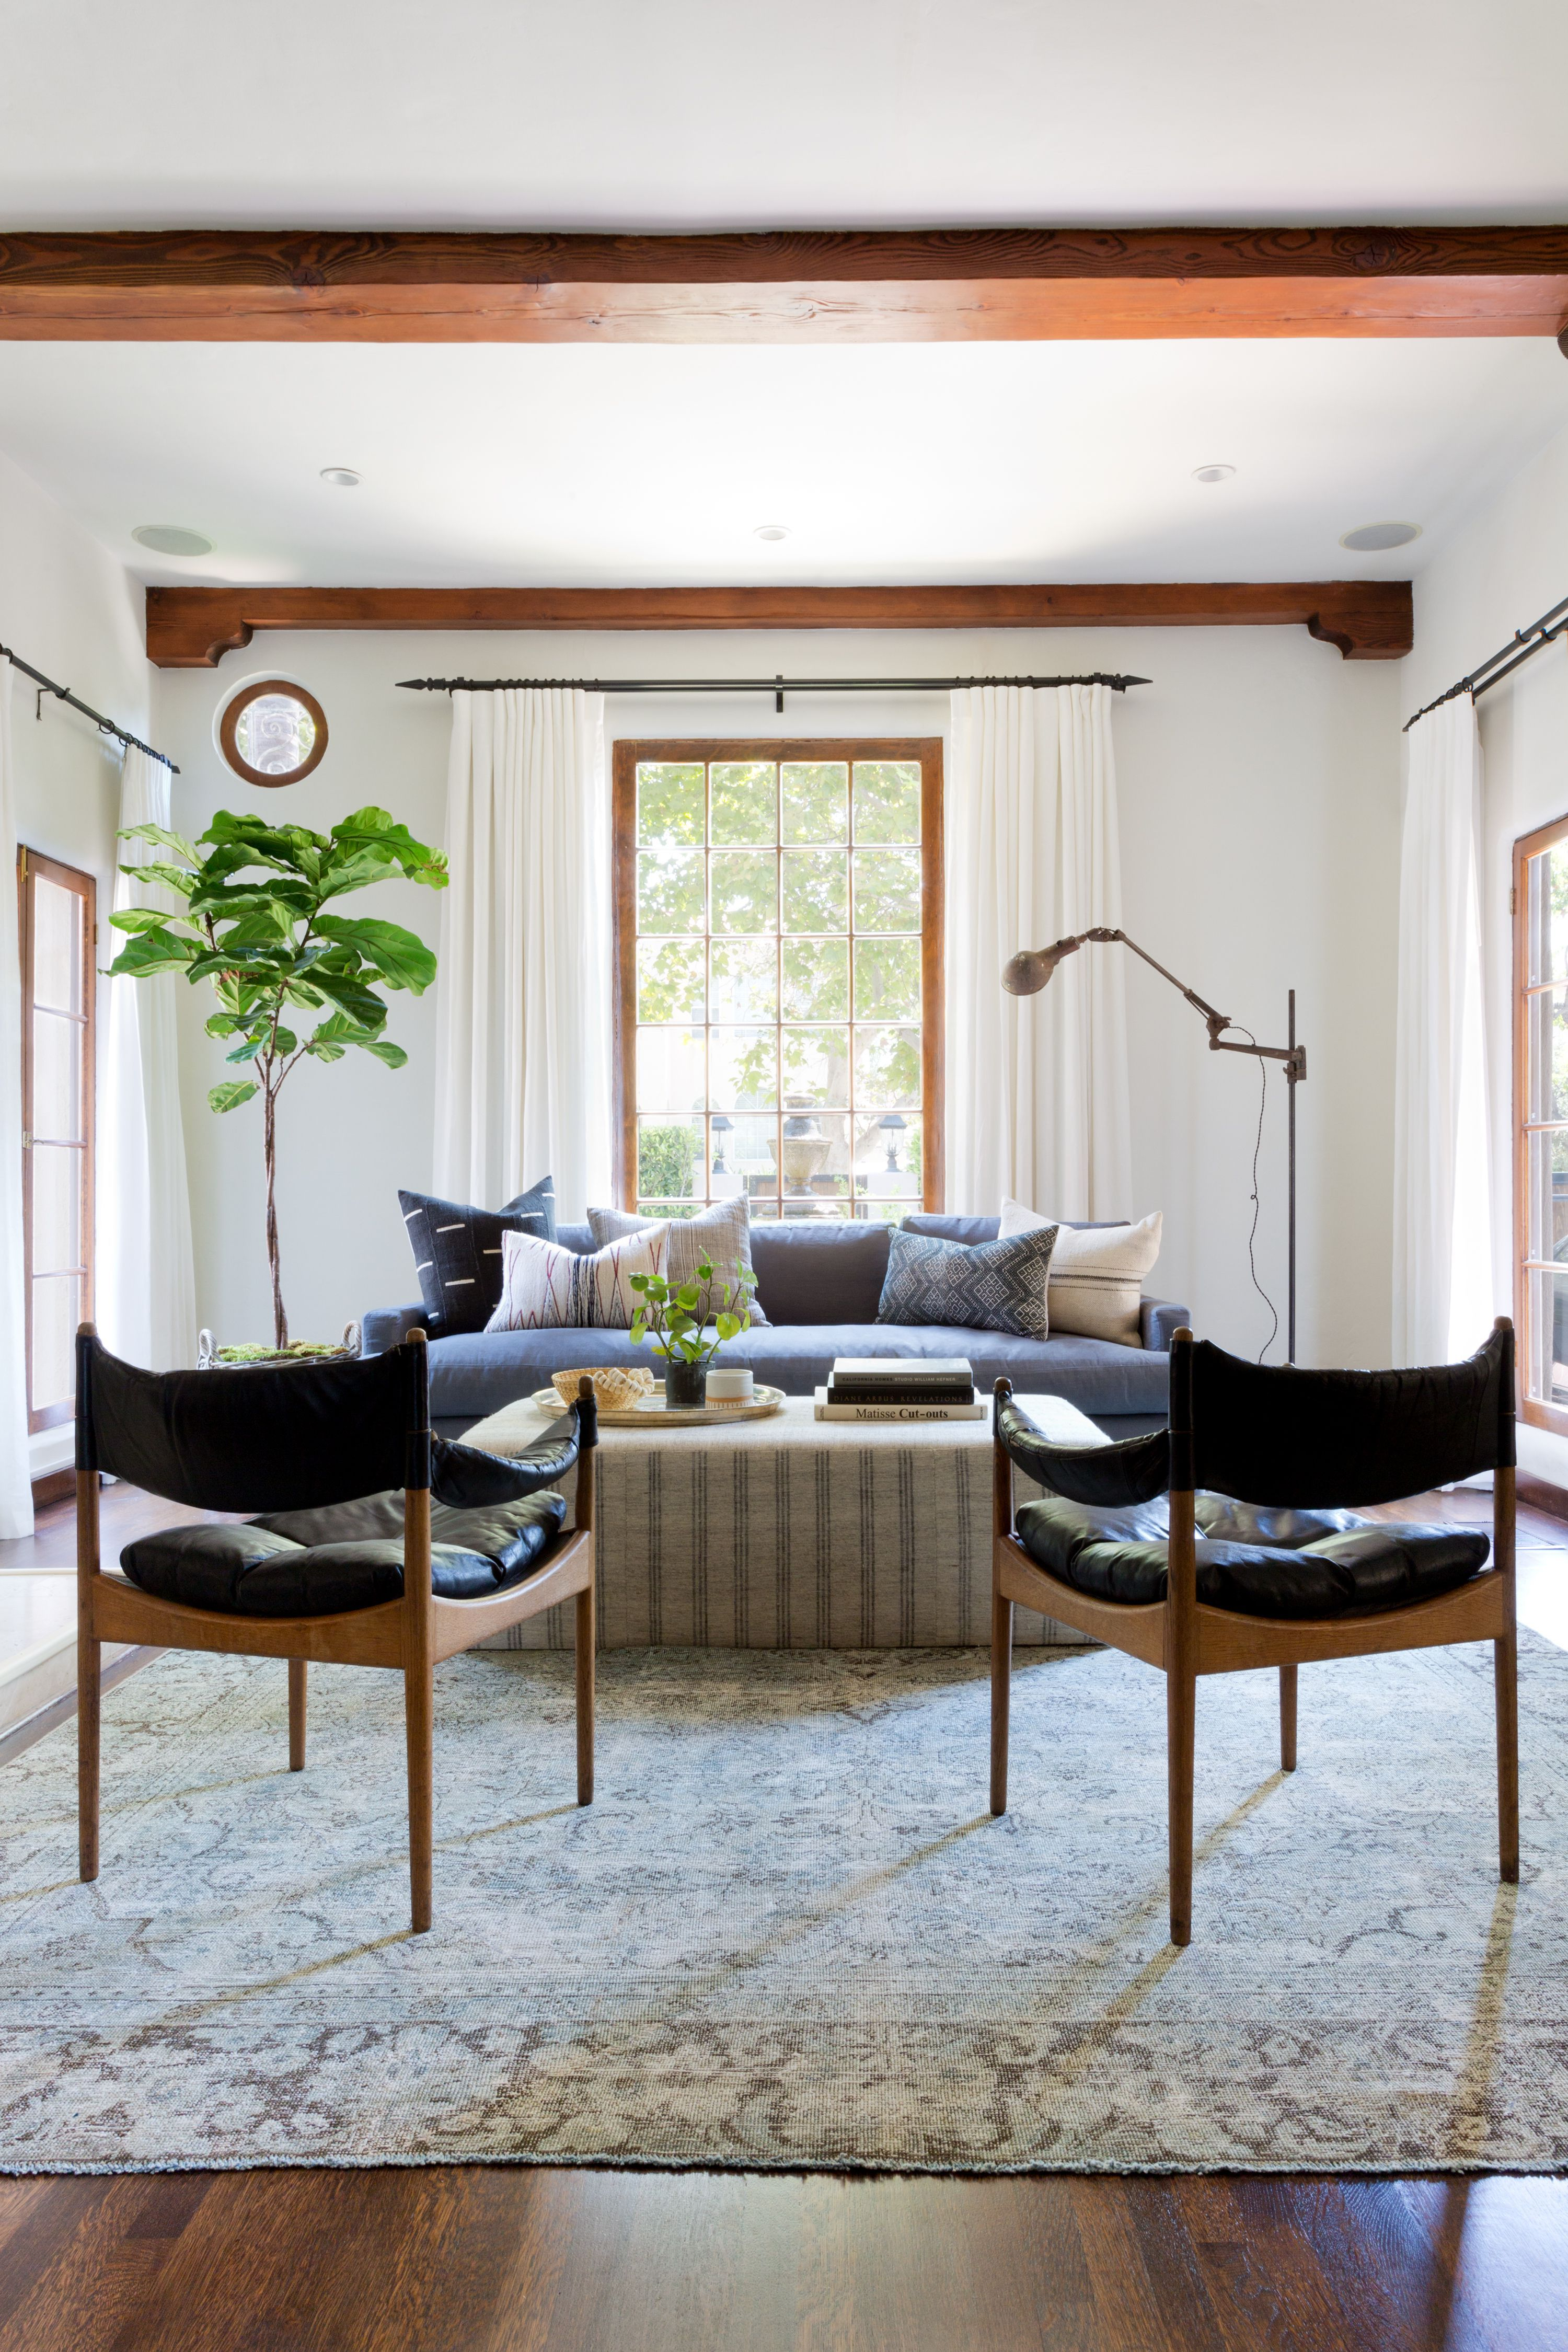 Image Result For An Interior Designer Explains Which Colors Go With Gray So You Can Nail The Look